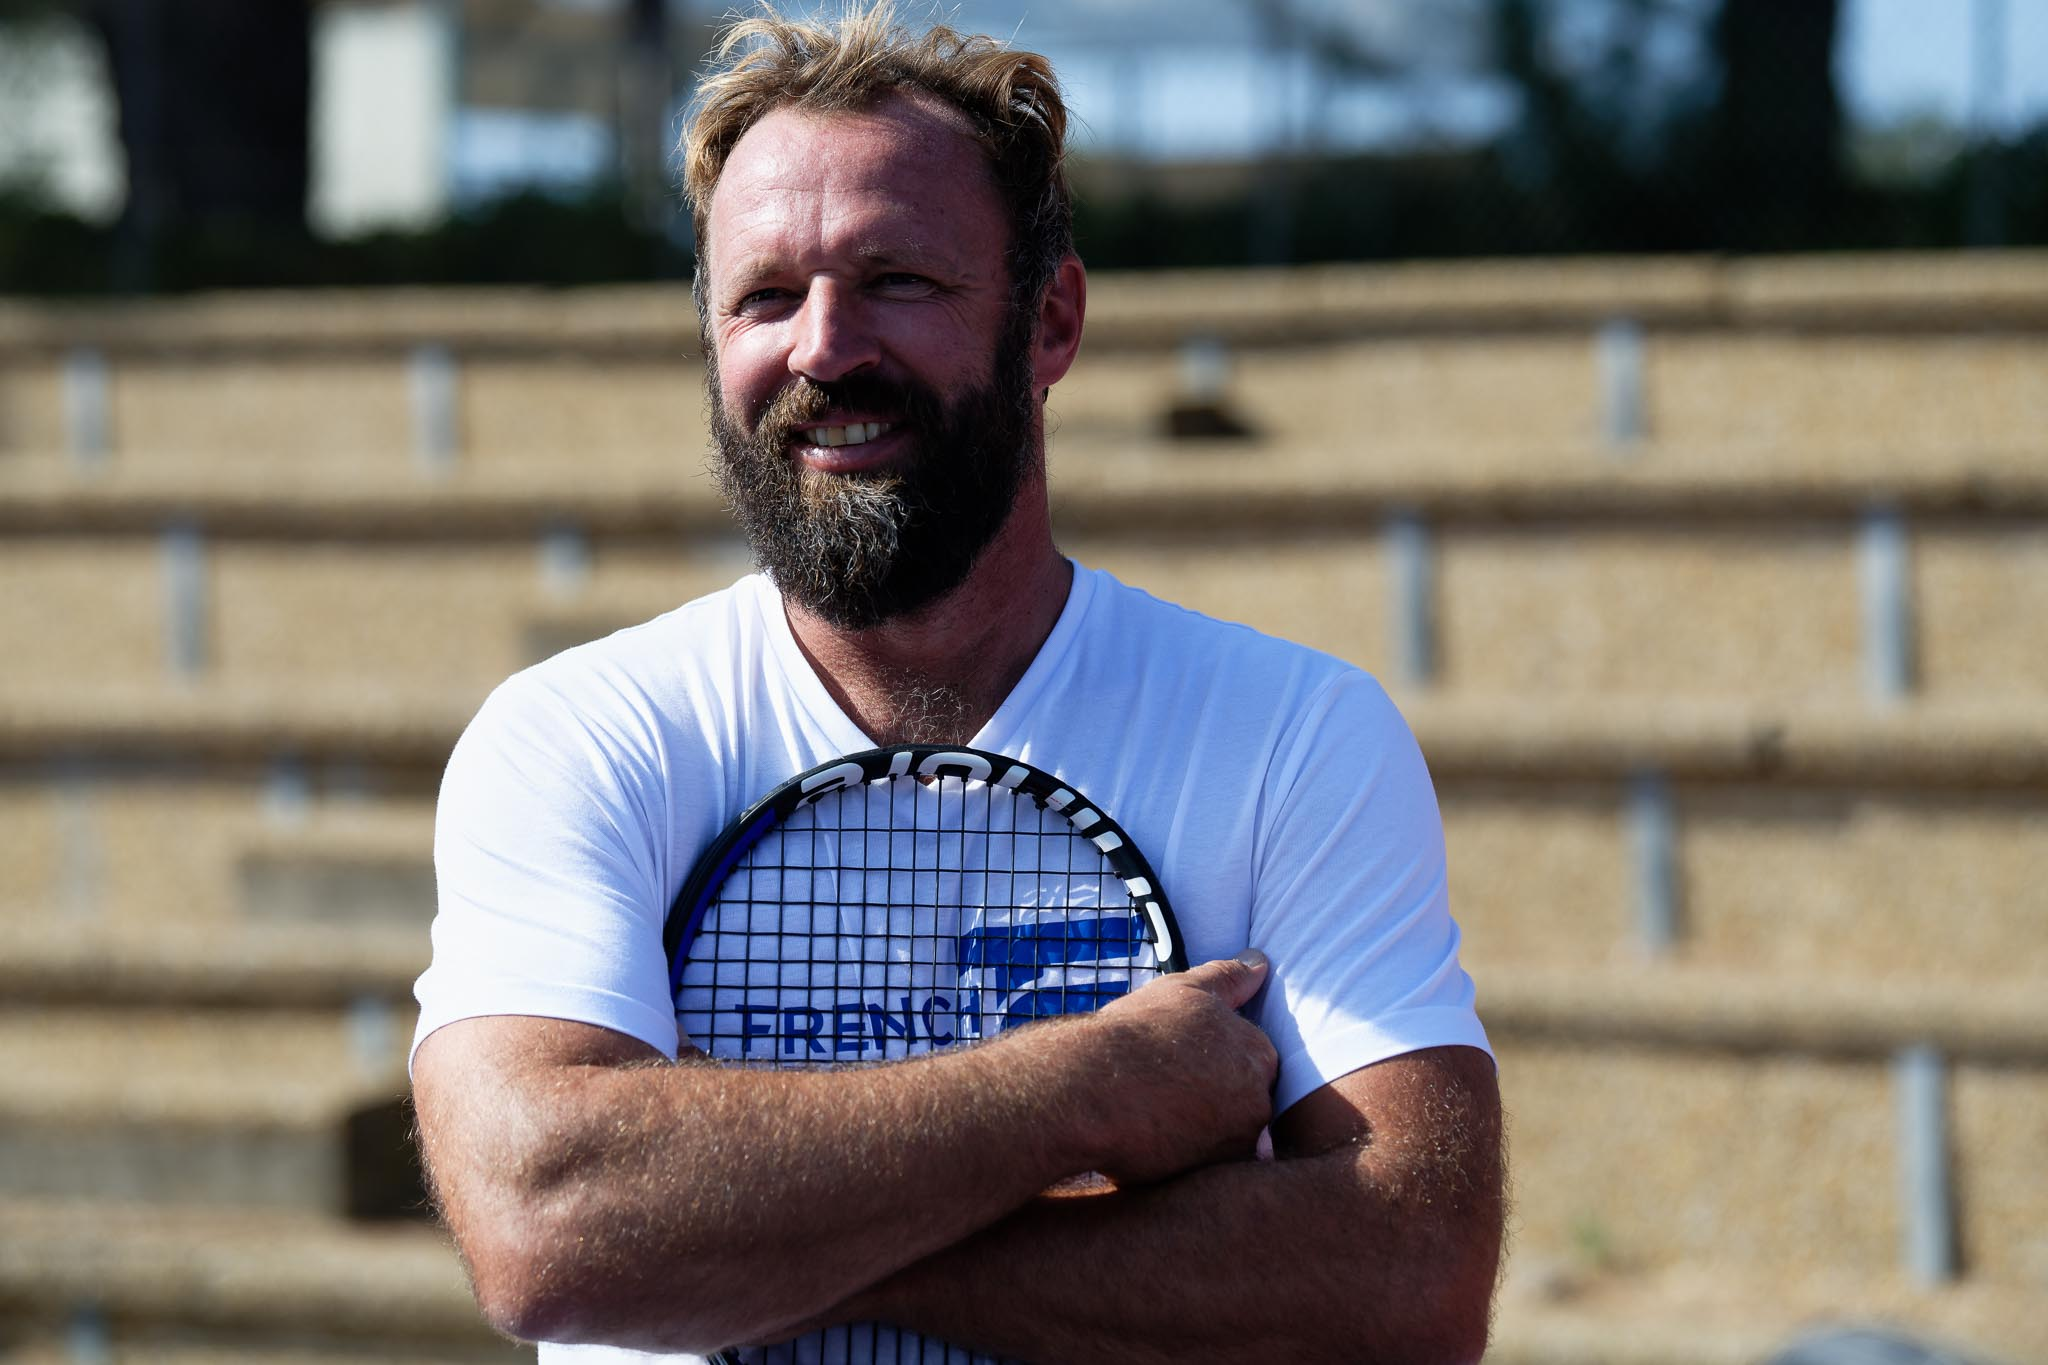 Charles Auffray, former professional tennis player, director of the academy